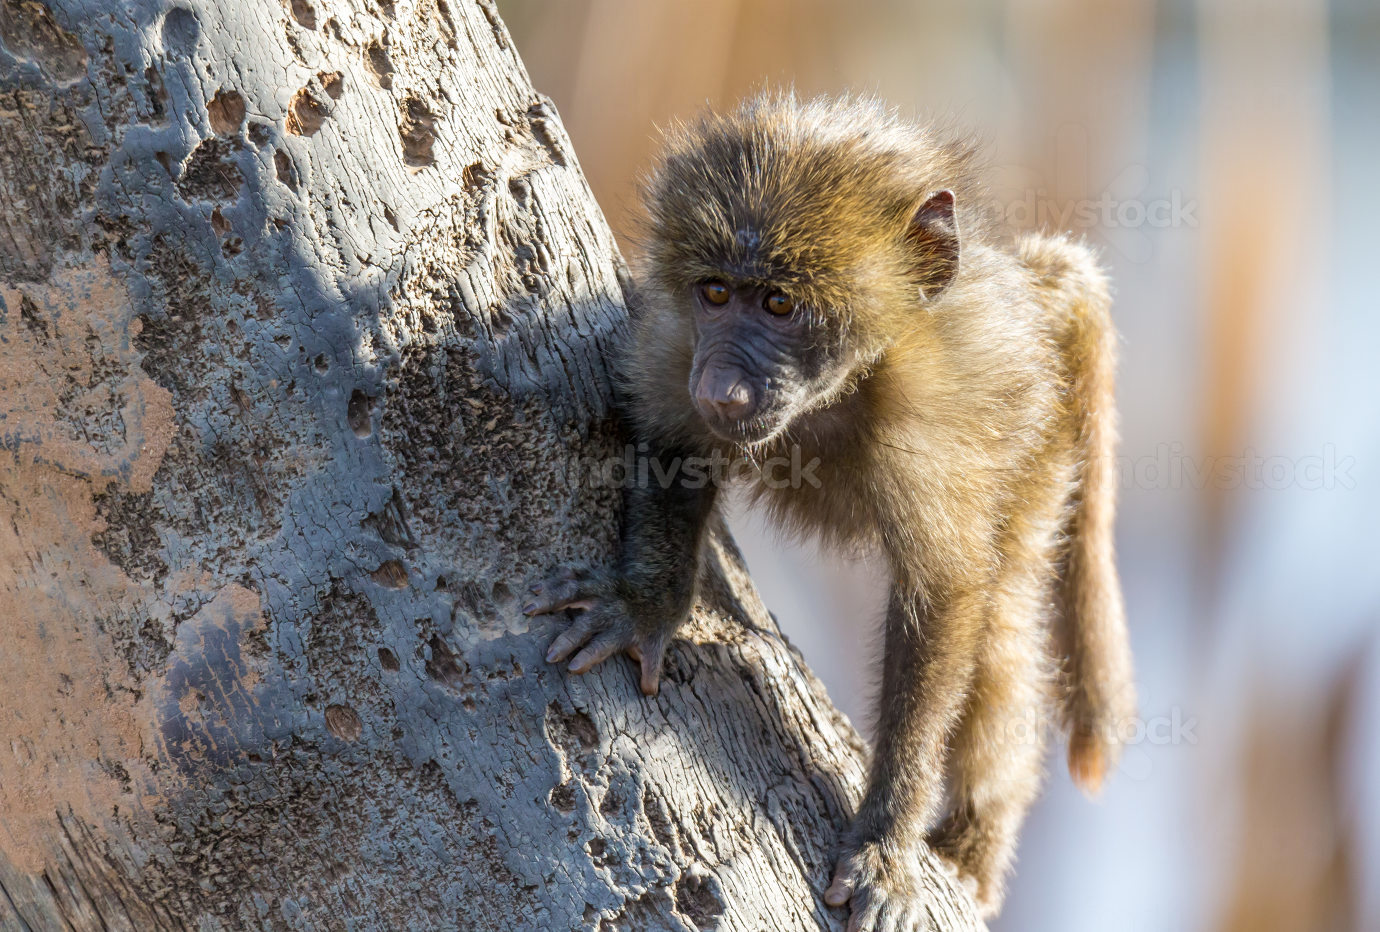 A little monkey is playing on a tree branch